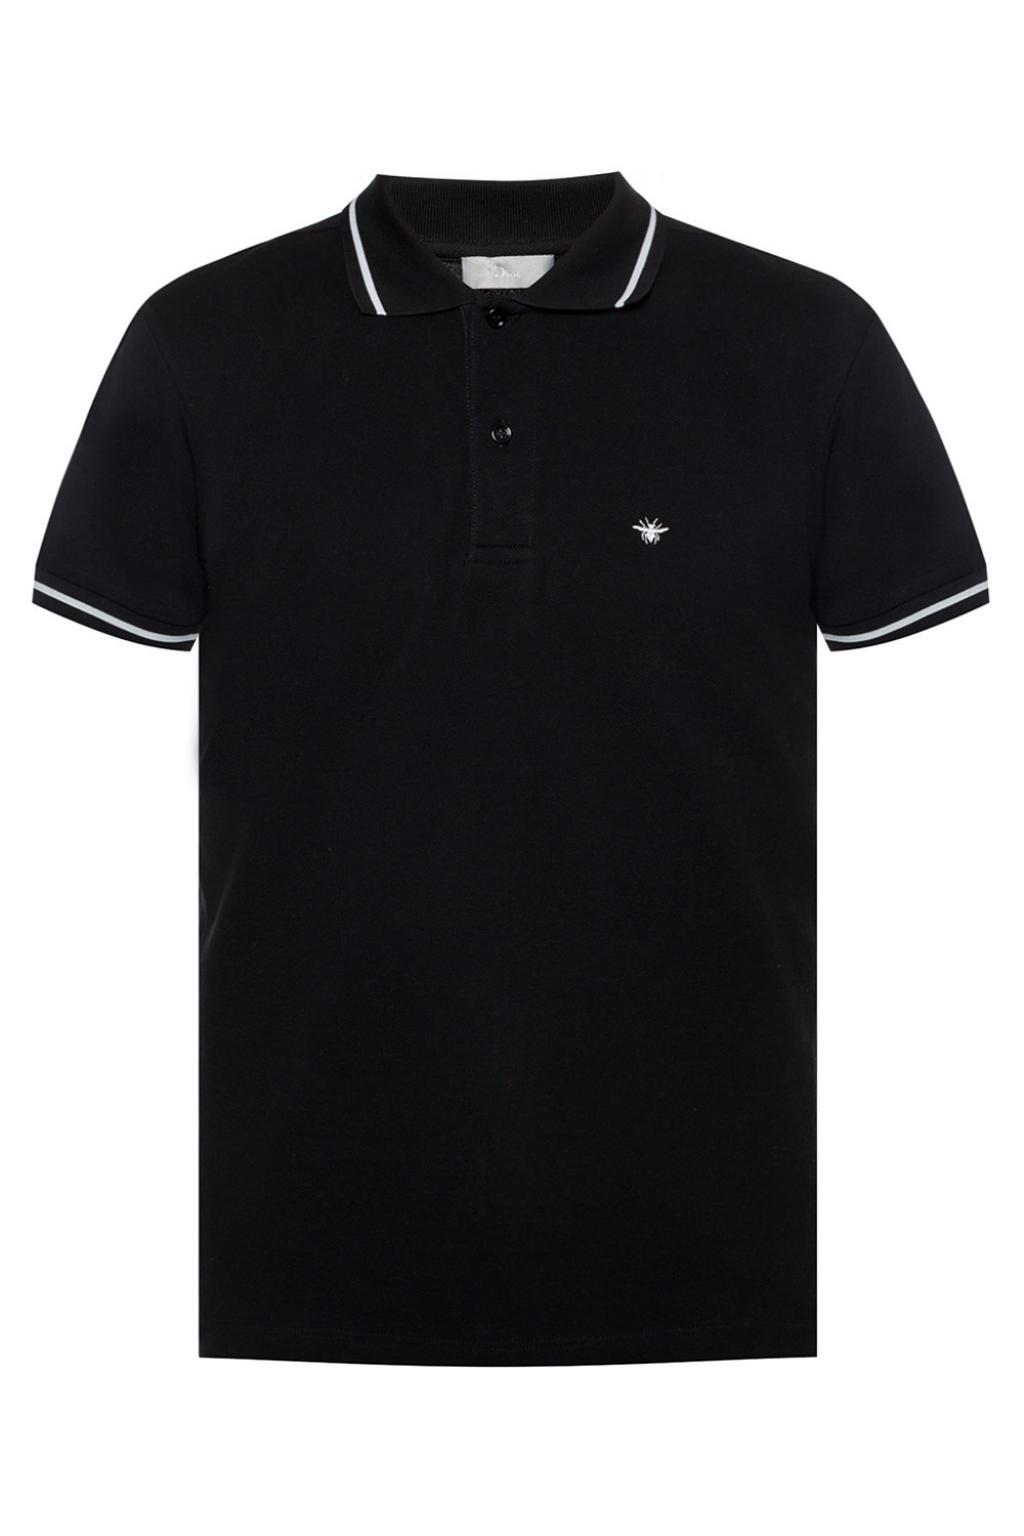 3a8a2b7f8c2 Lyst - Dior Bee Motif Polo Shirt in Black for Men - Save 39%